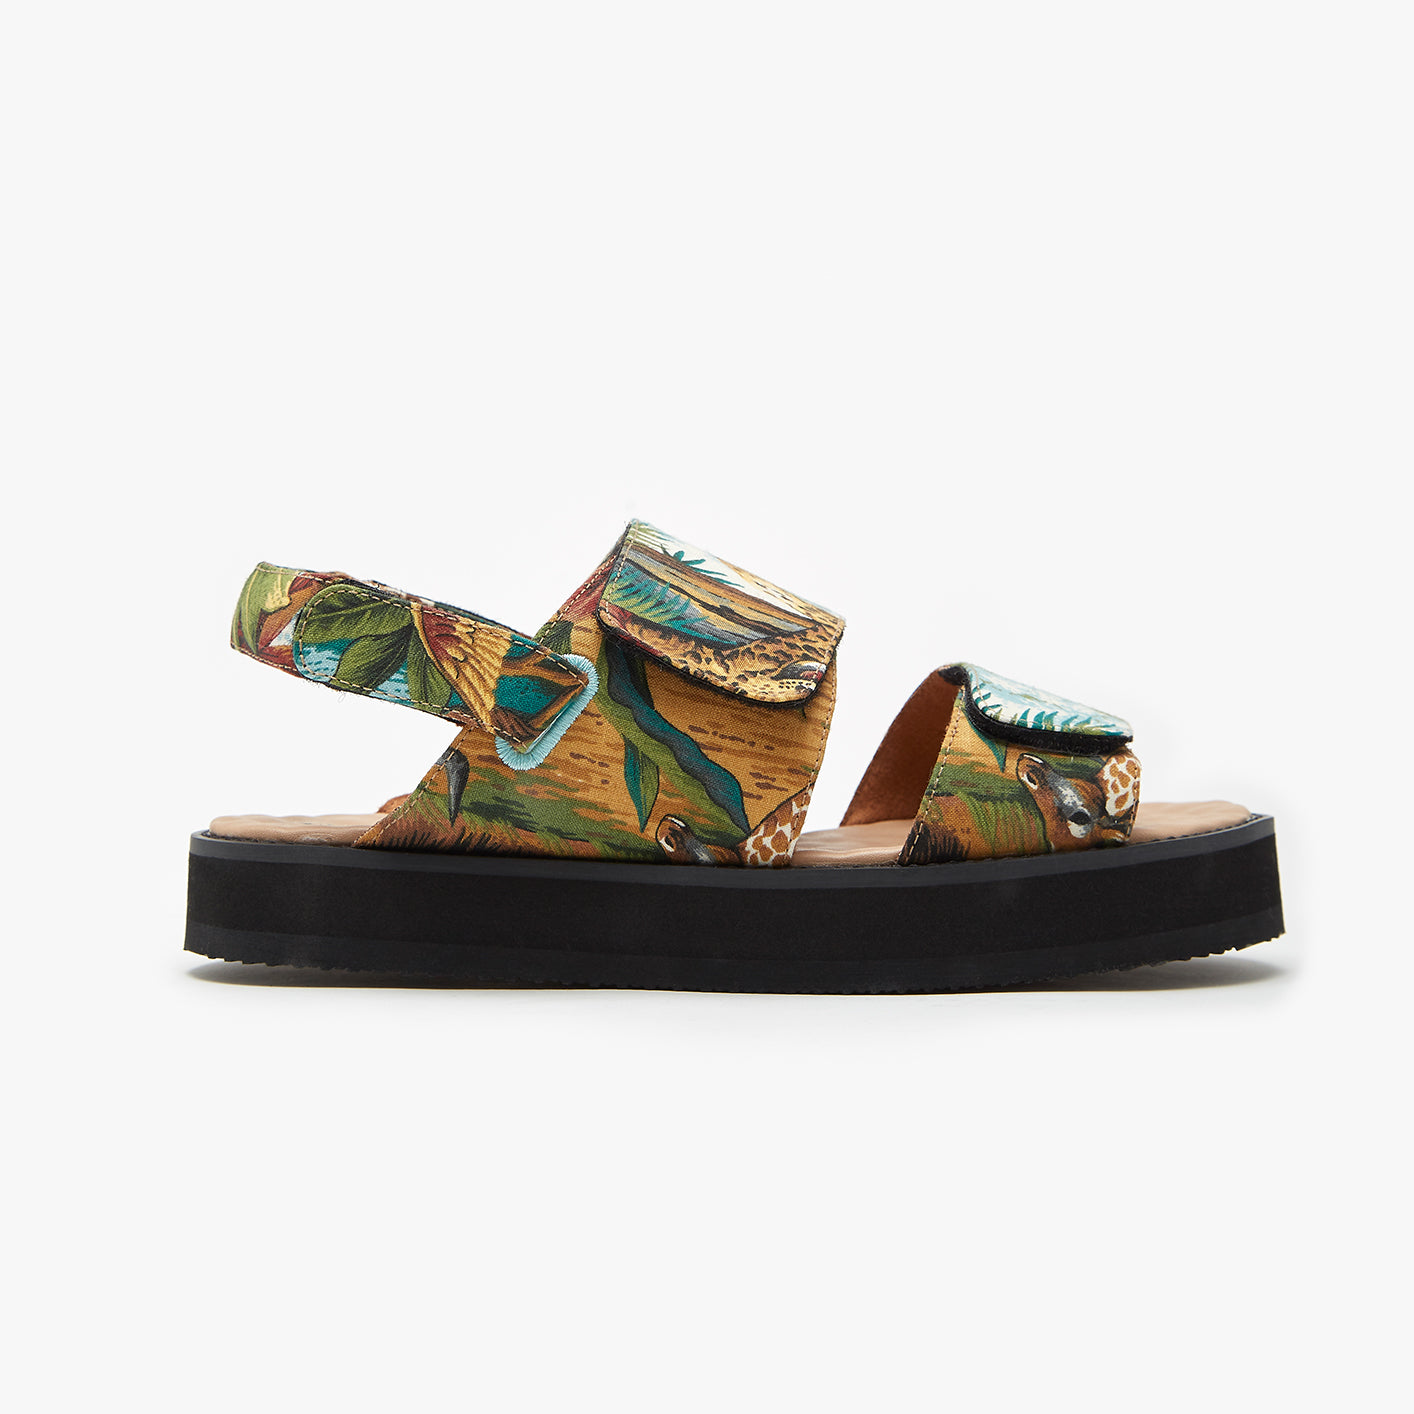 Zulu Strap Sandal - Insecta Shoes